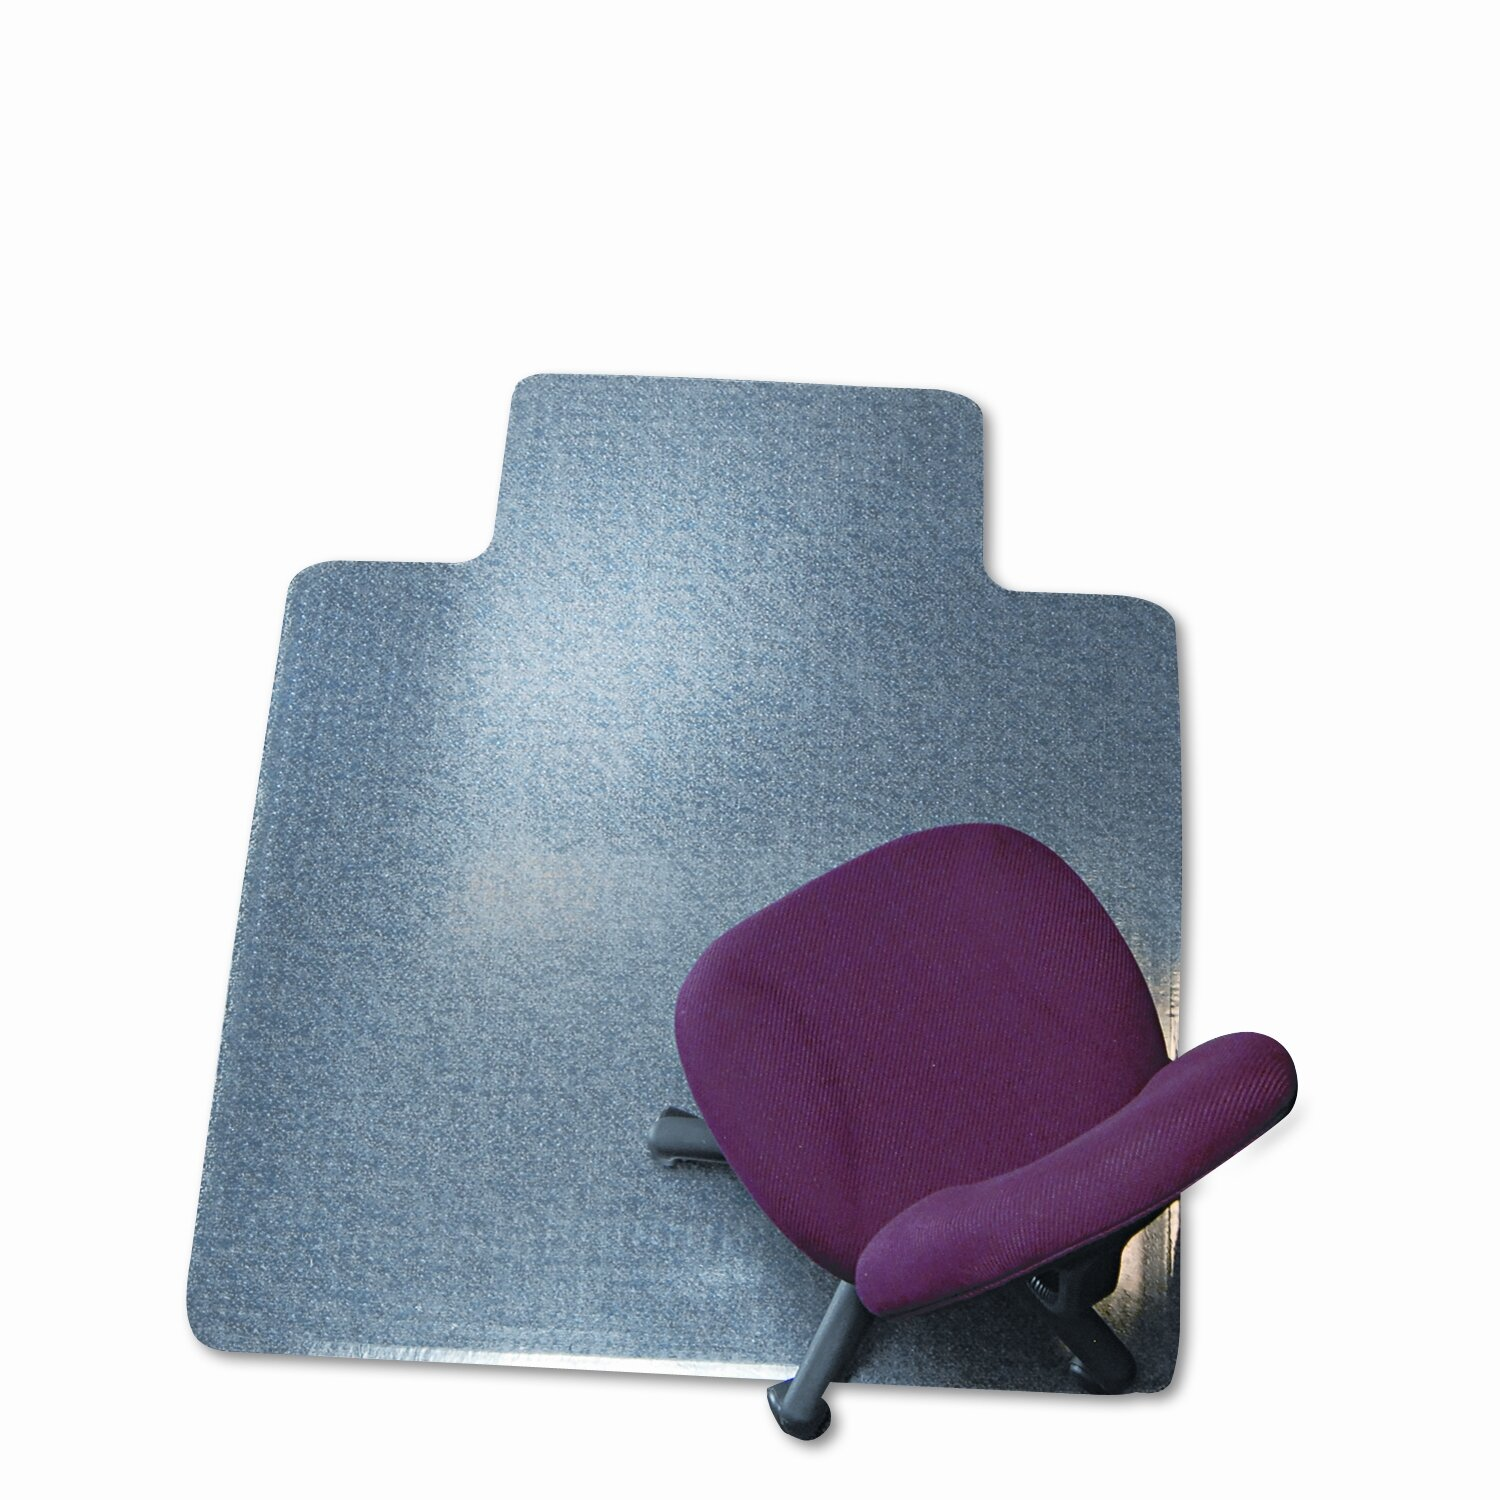 Es Robbins Anchormat High Pile Carpet Beveled Edge Chair Mat